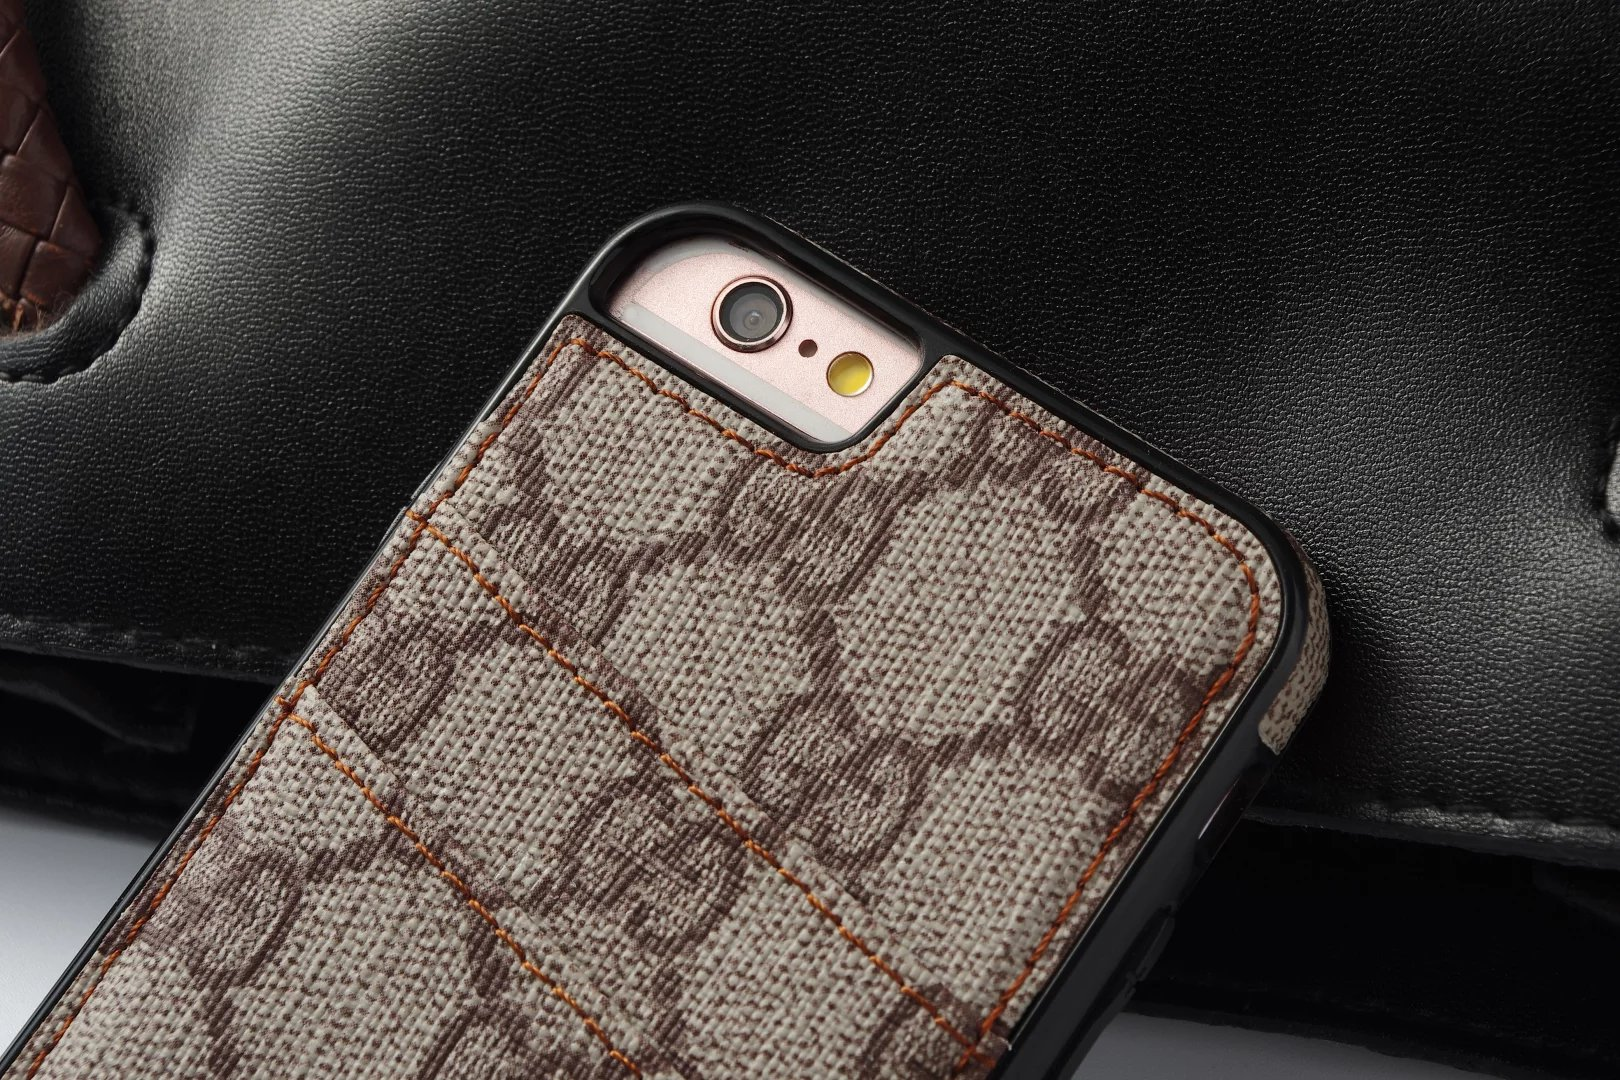 design cases for iphone 8 Plus design own iphone 8 Plus case Louis Vuitton iphone 8 Plus case top 8 Plus cases case cooler master case 8 Plus iphone mophie 8 Plus case branded phone cases iphone bag